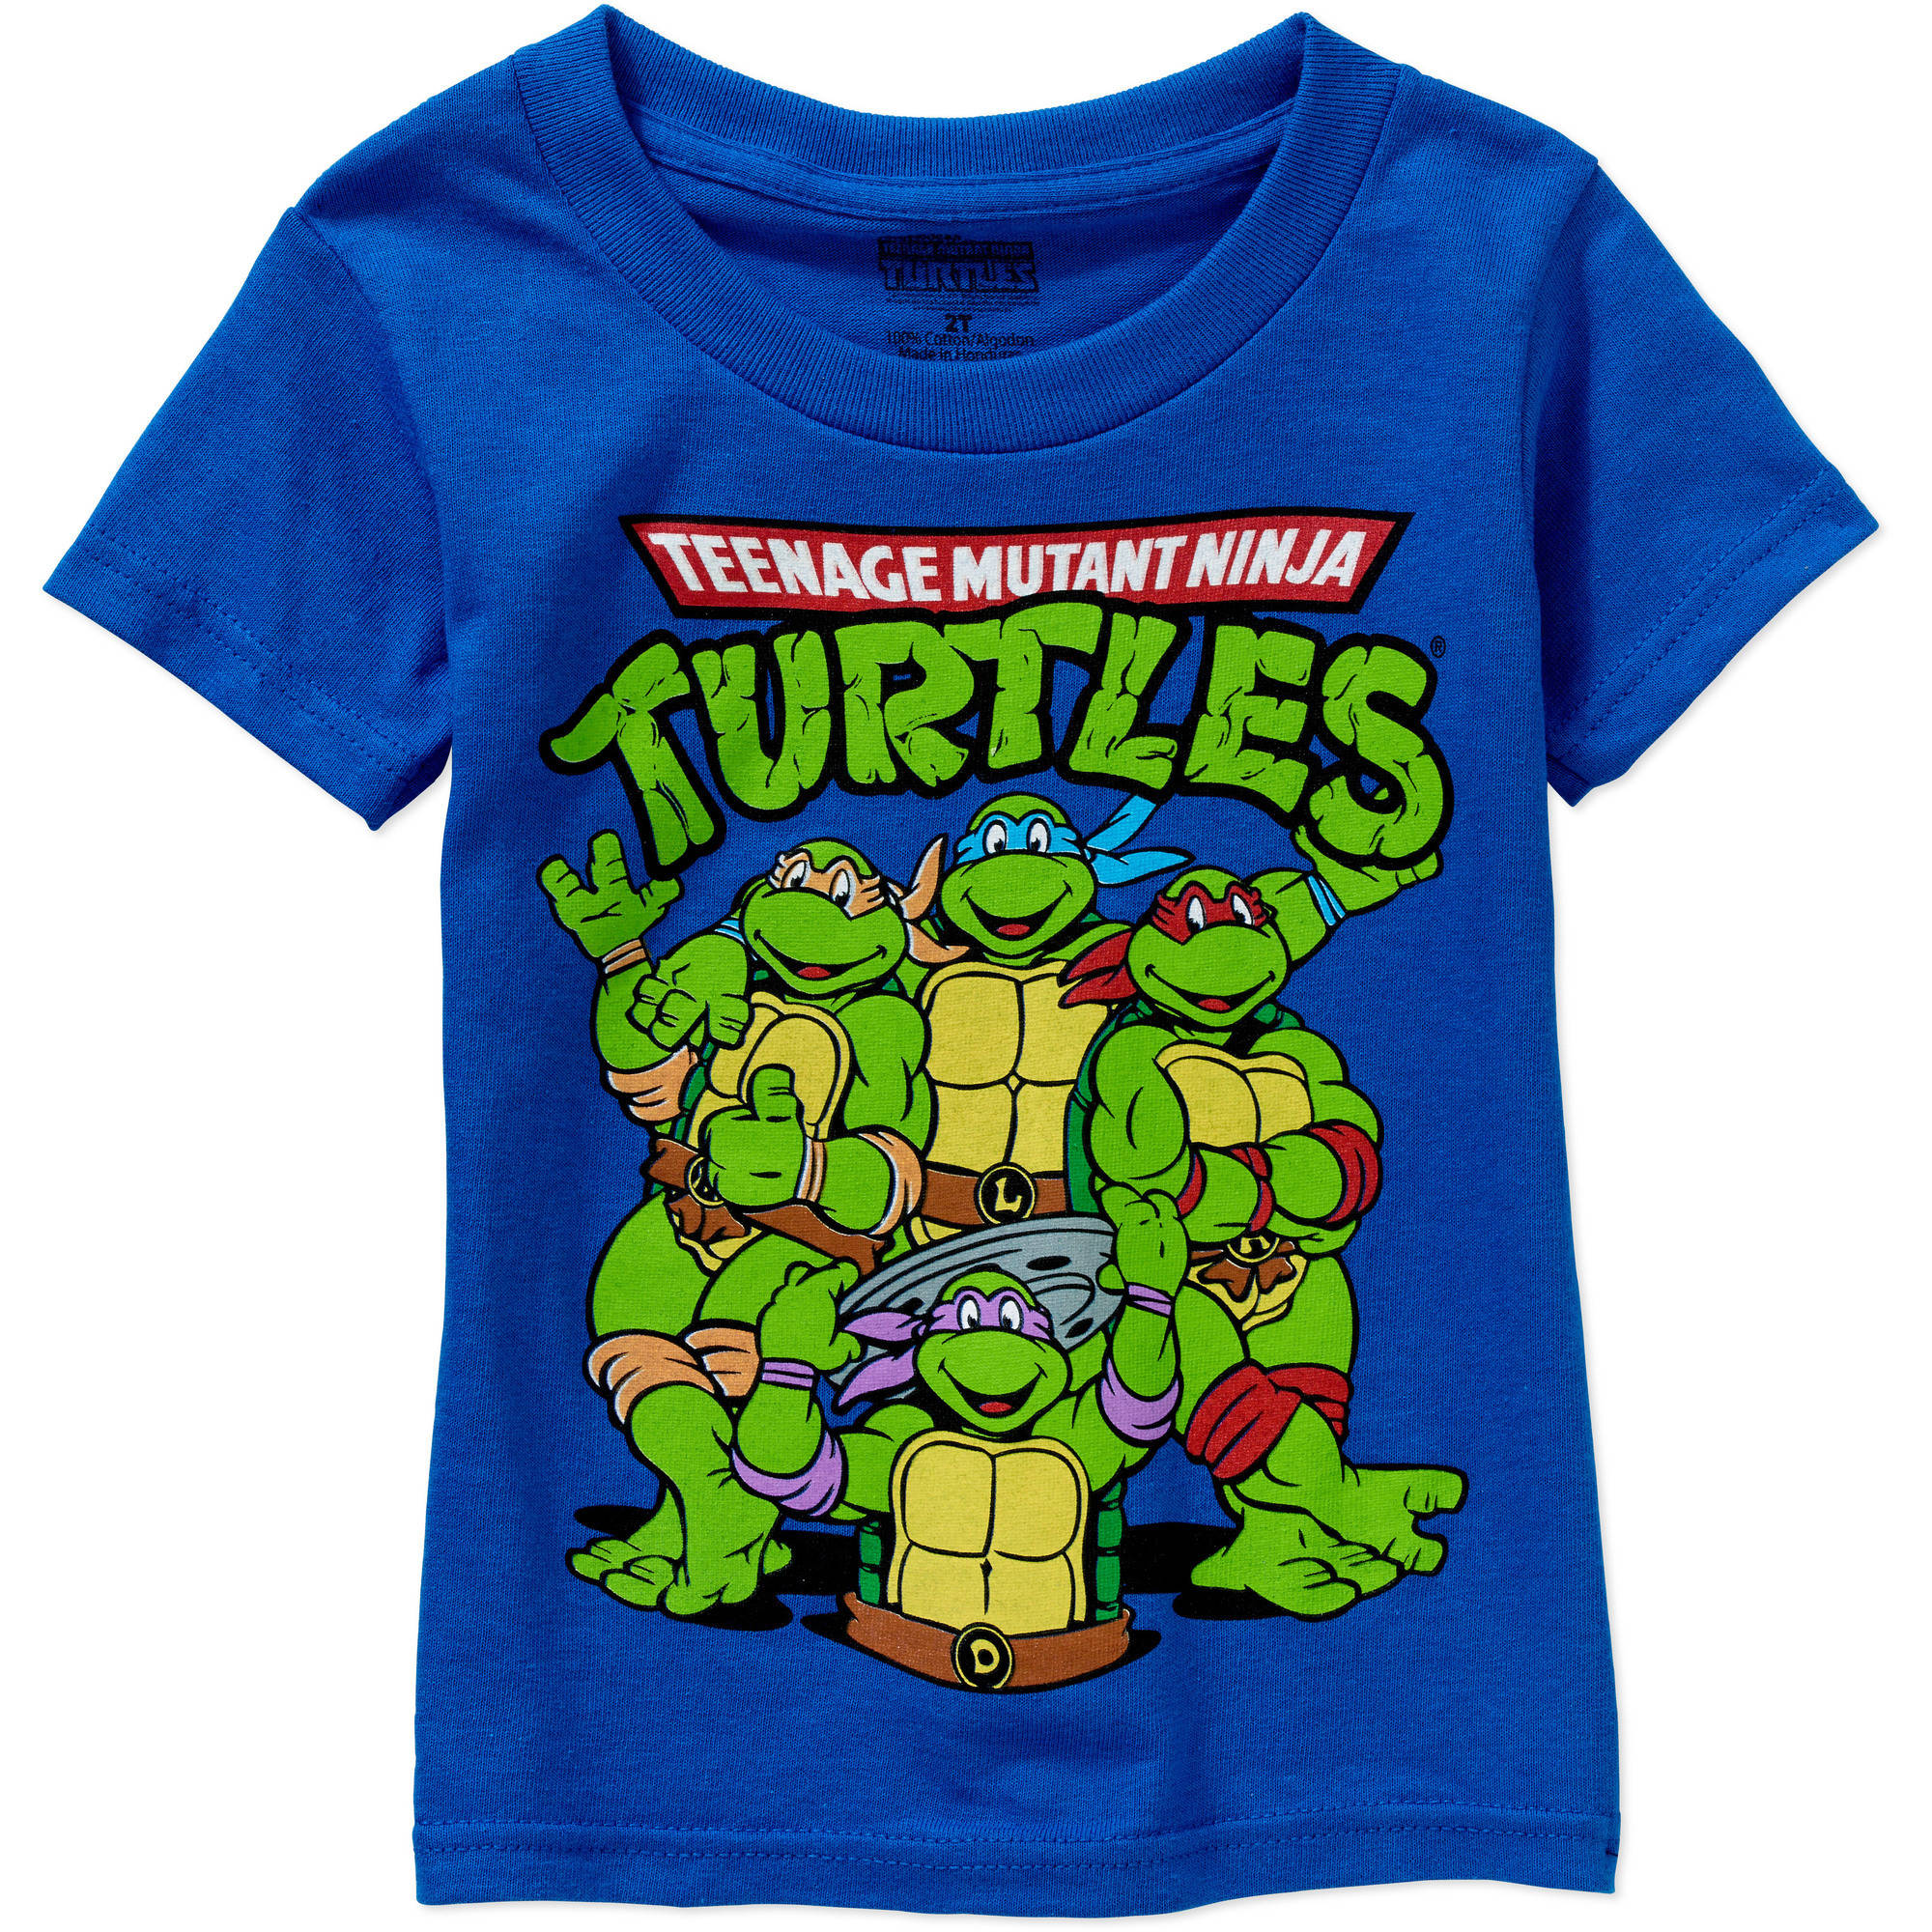 Nickelodeon Teenage Mutant Ninja Turtles Toddler Boy Short Sleeve Graphic T-Shirt